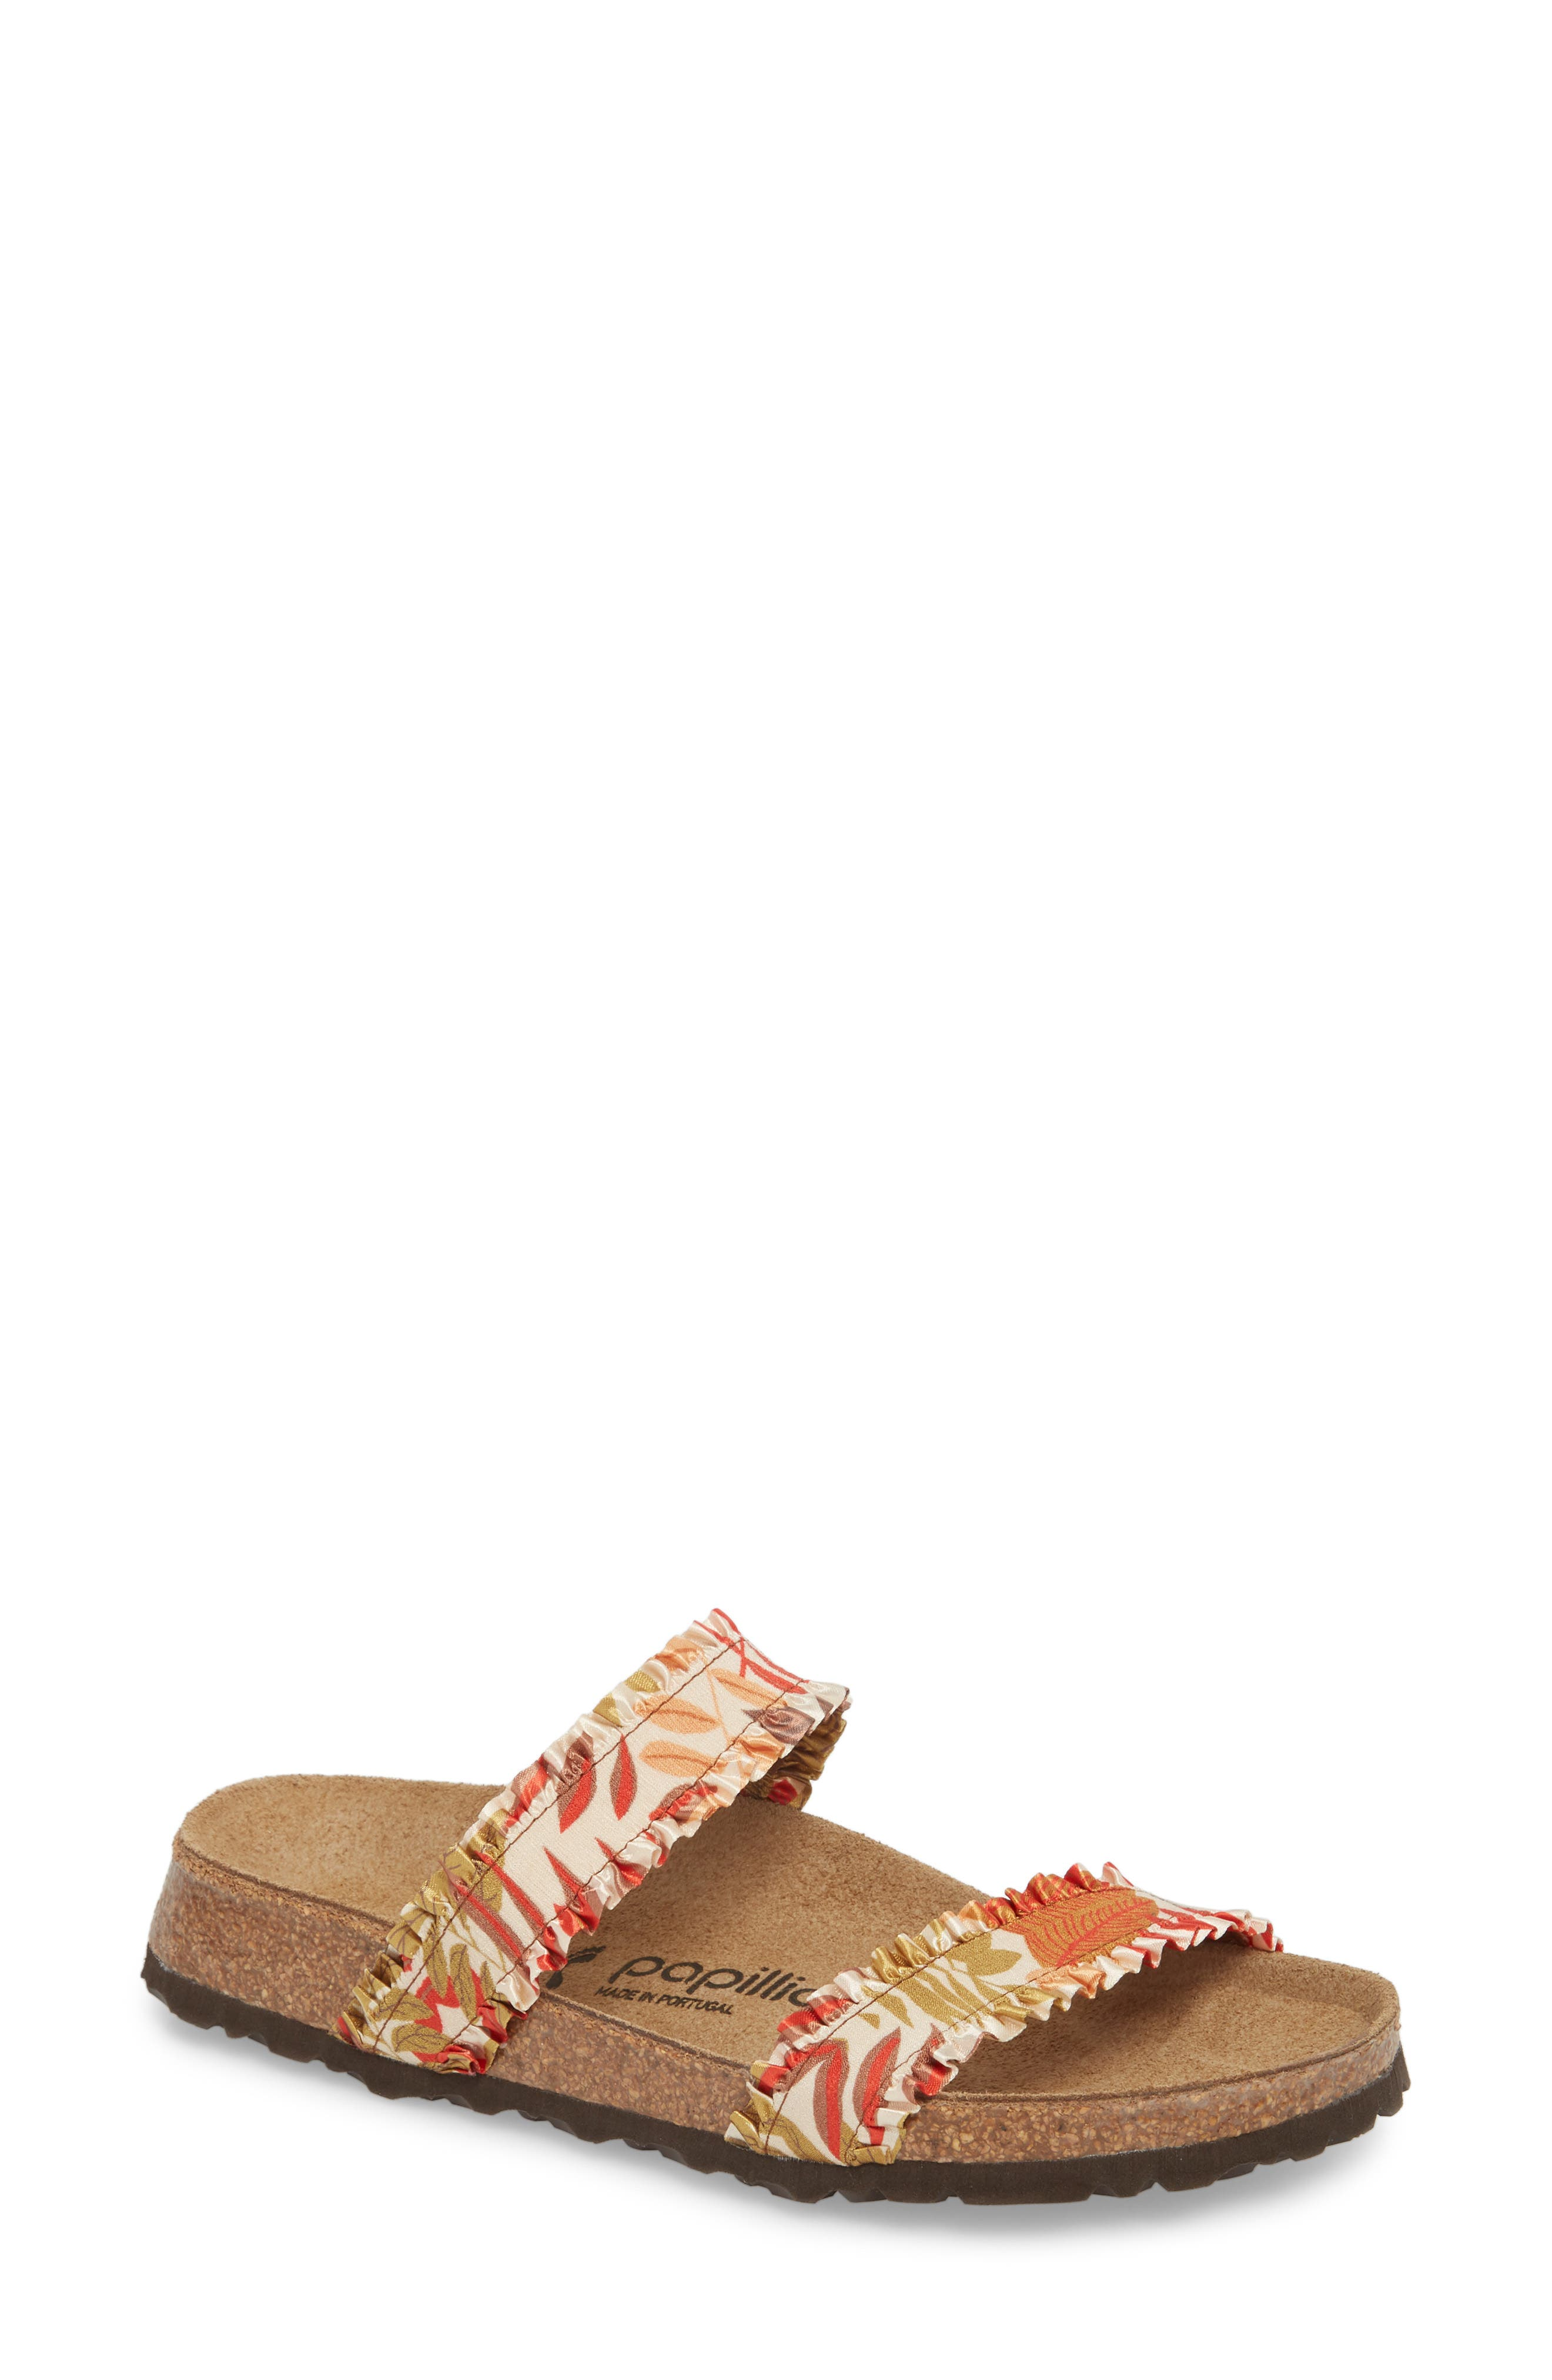 Papillio by Birkenstock Curacao Slide Sandal,                         Main,                         color, Flower Frill Brown Fabric